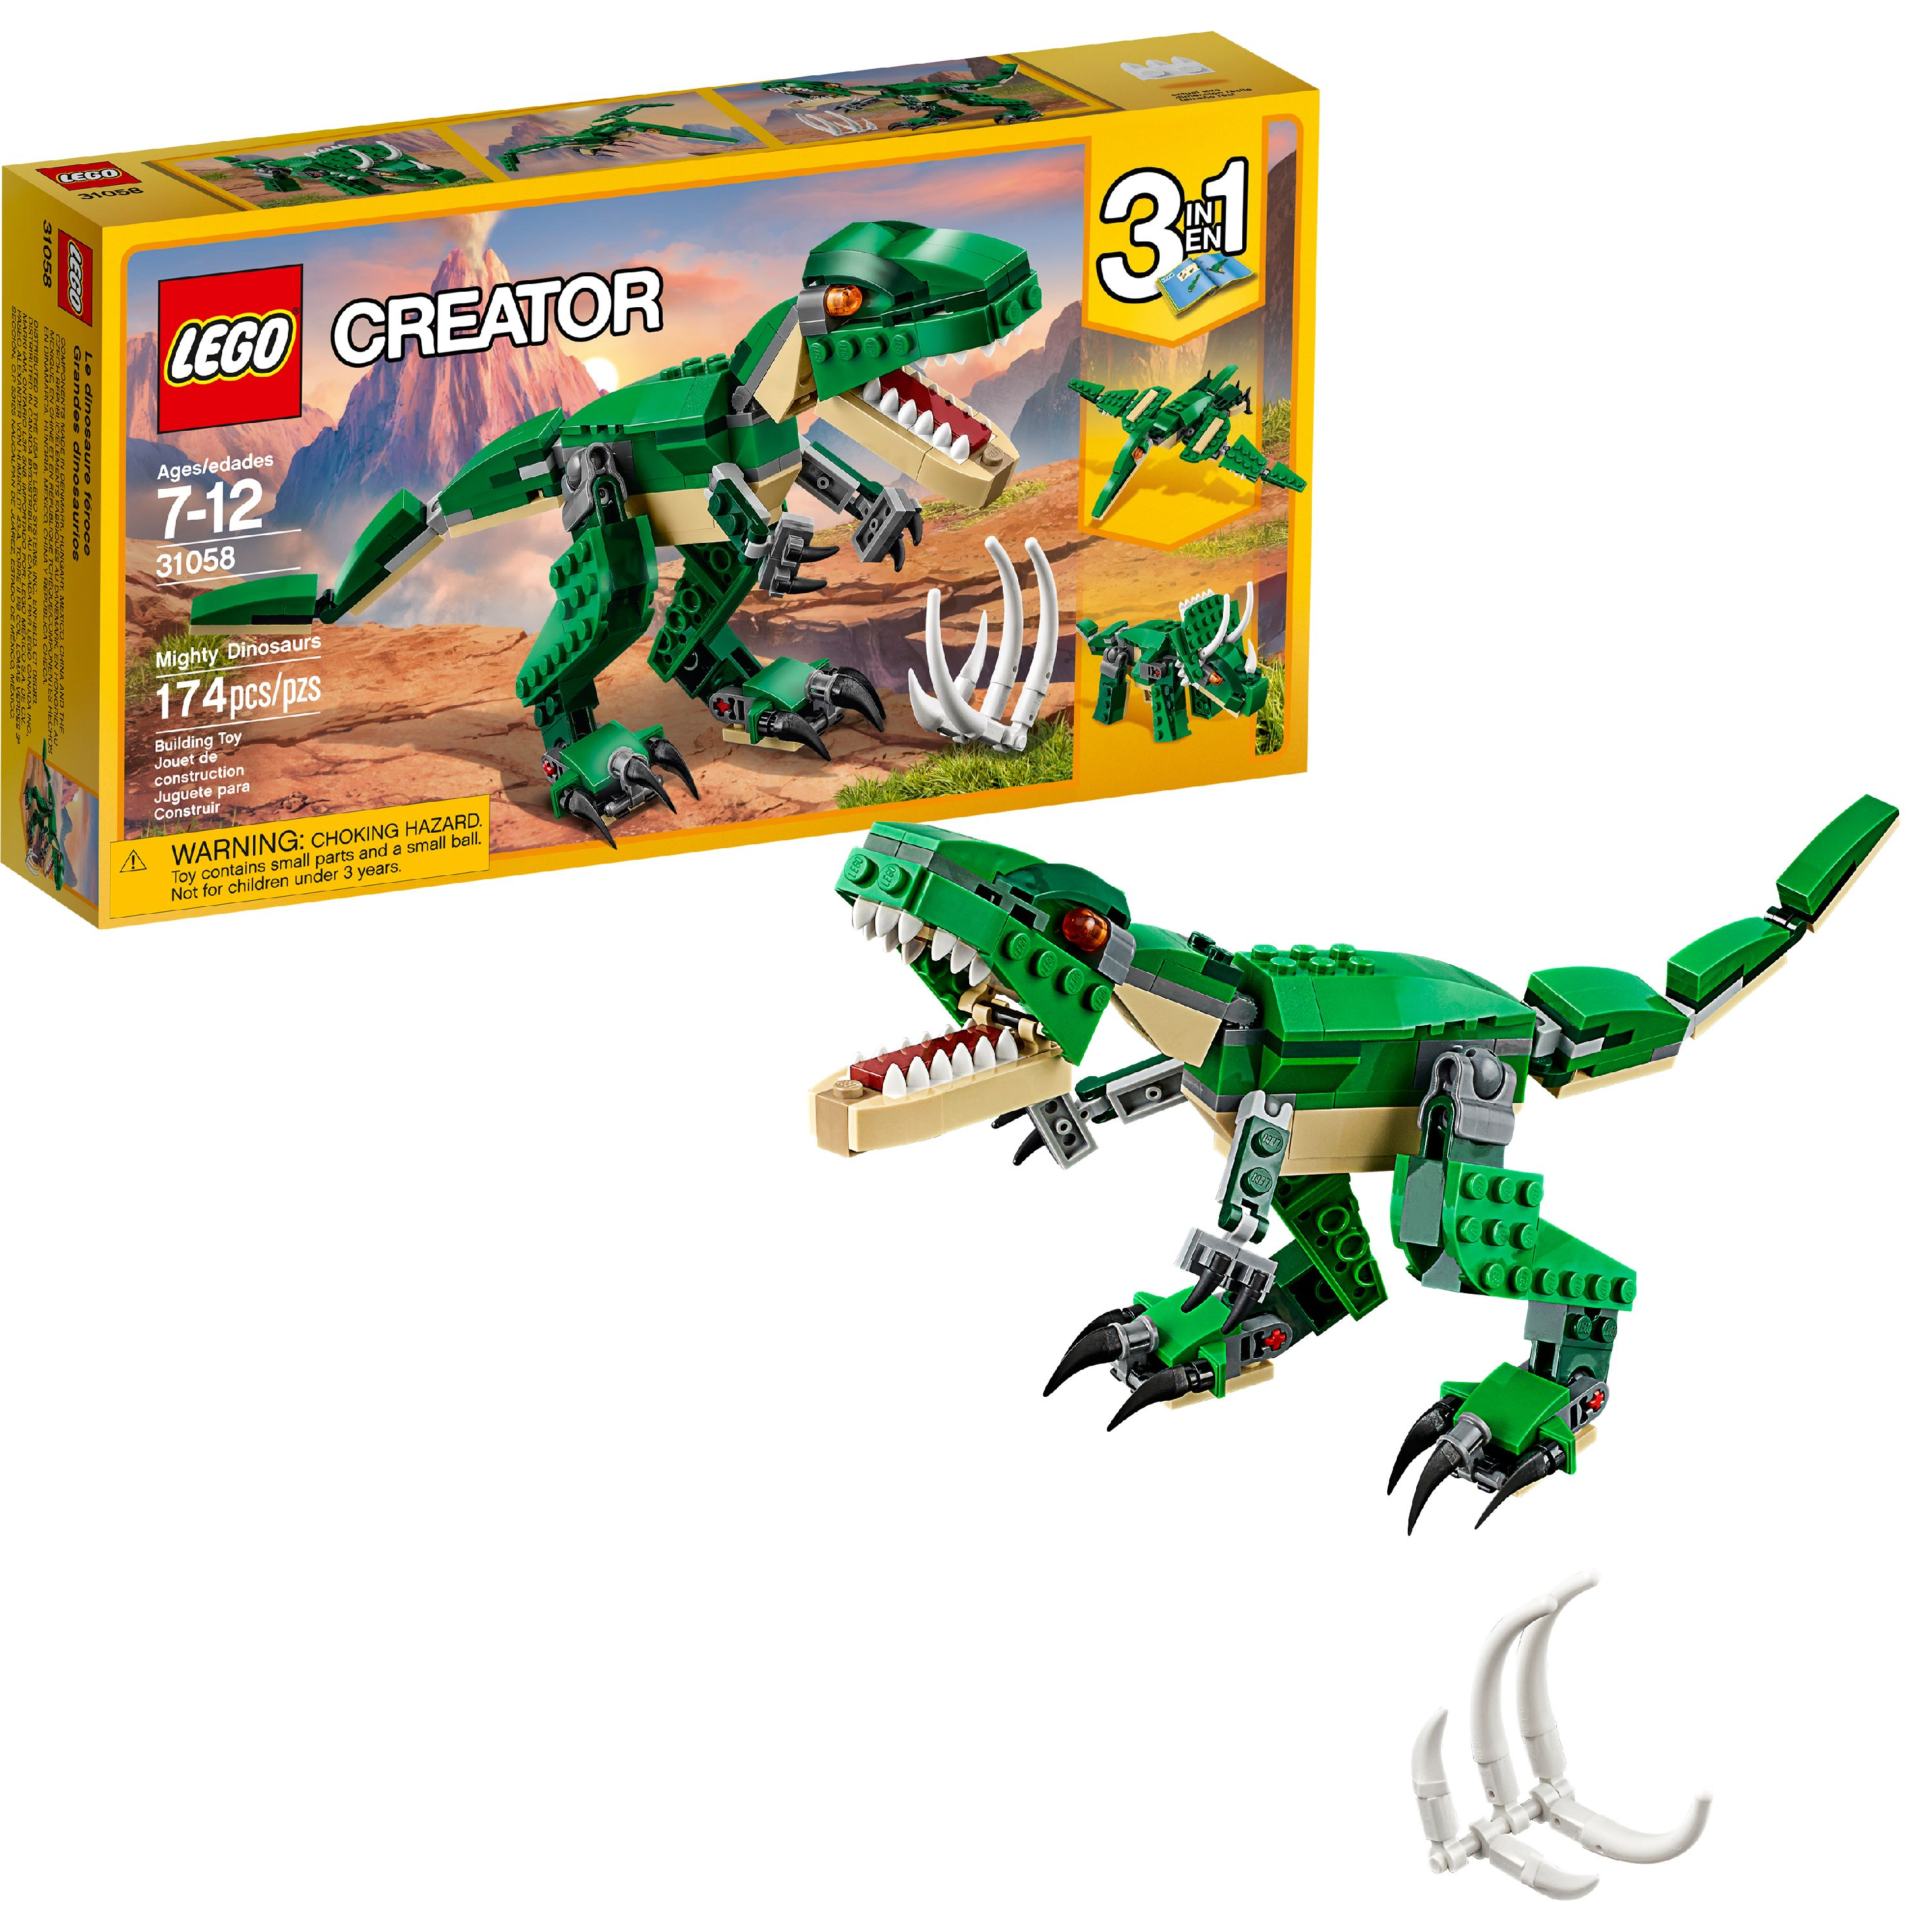 LEGO Creator Mighty Dinosaurs 31058 T Rex Building Toy (174 Pcs)